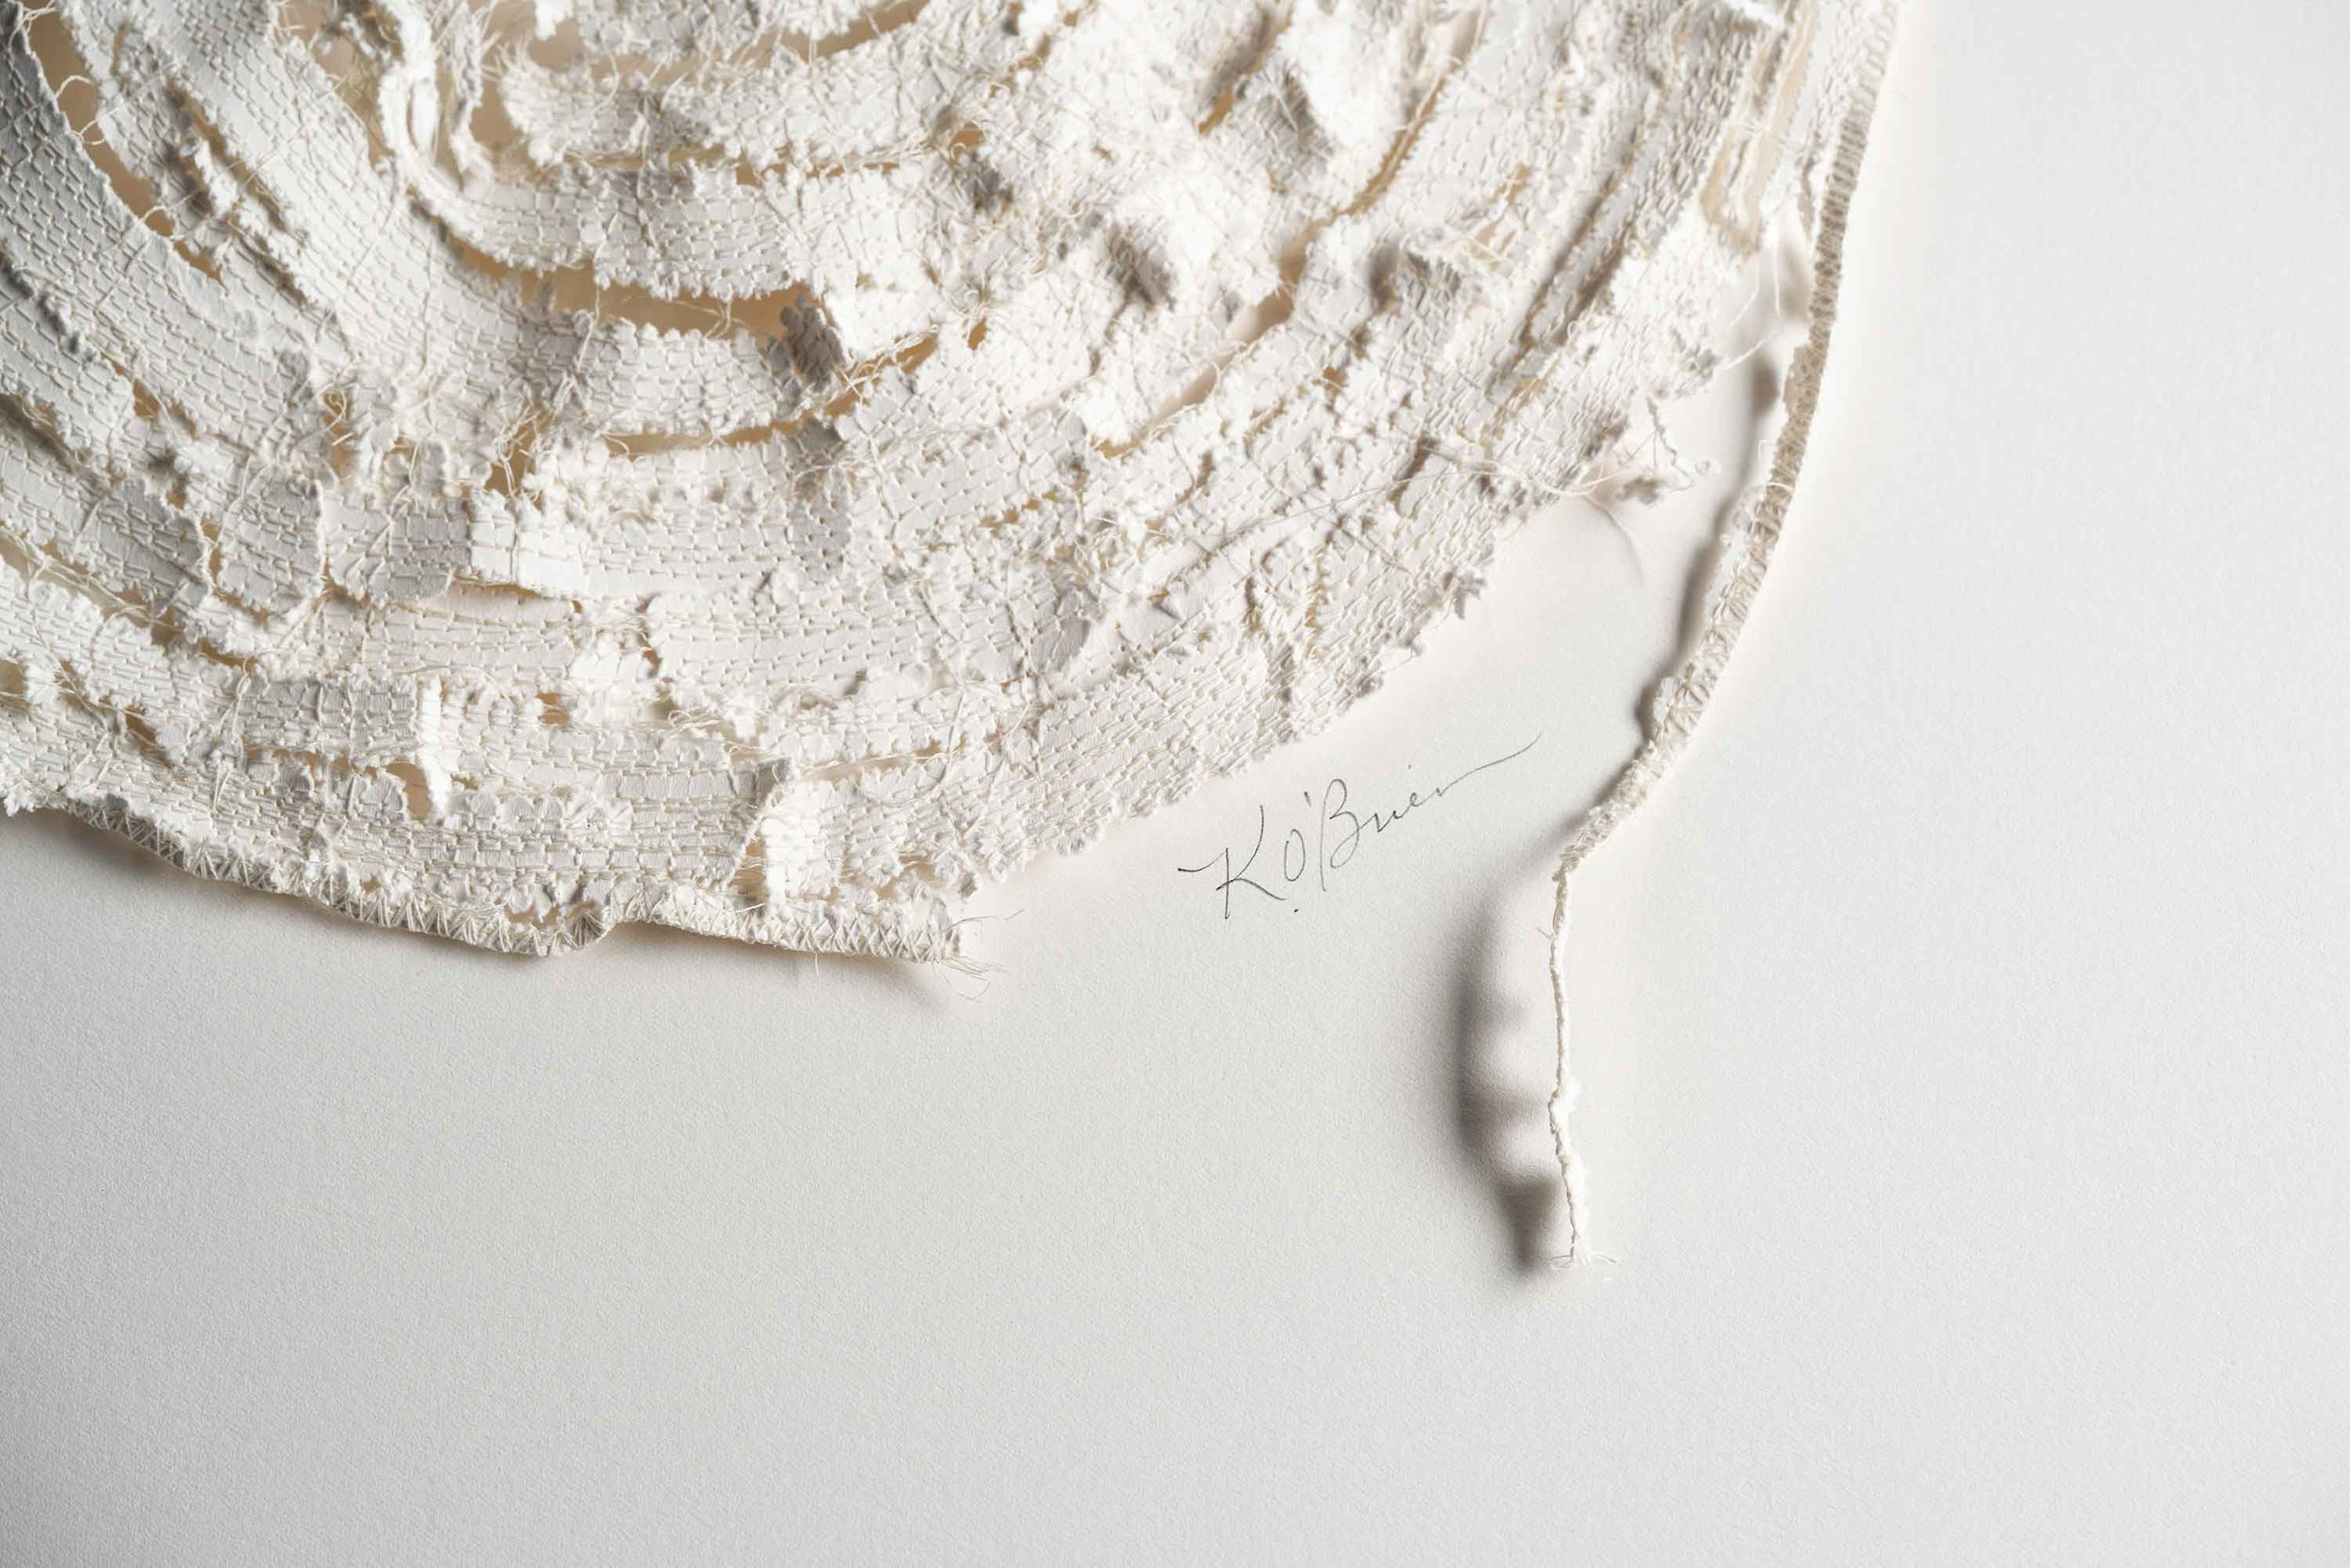 Kelly-M-O'Brien,-Stitch-No.-1-detail_Paper-and-thread_12x12-in-30x30-cm_unframed-©2019-3000x2000px-75dpi.jpg